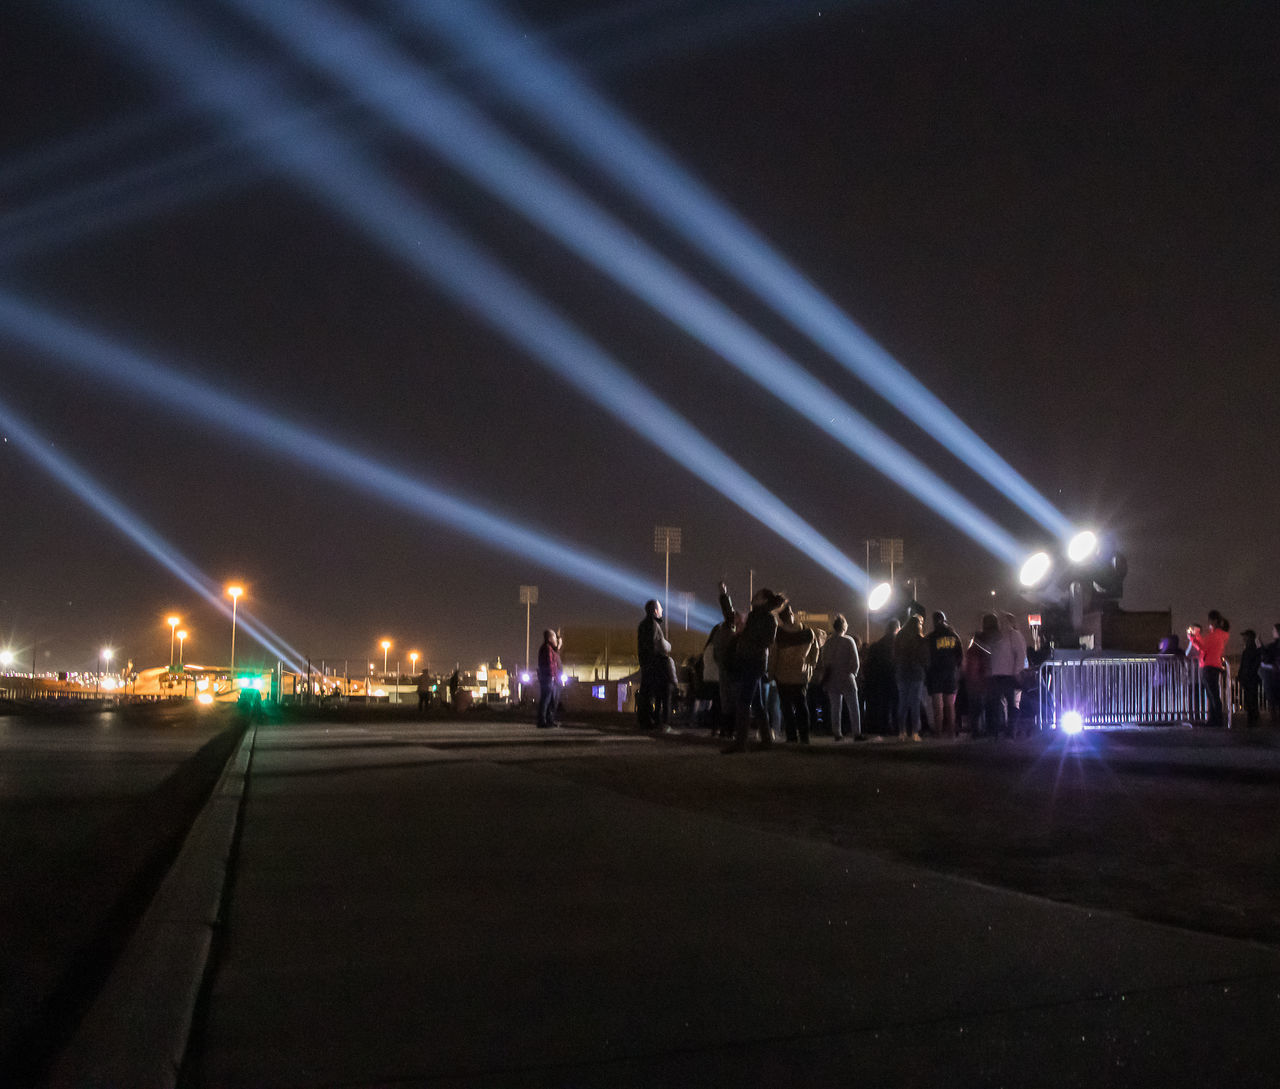 night, illuminated, transportation, large group of people, crowd, group of people, lighting equipment, real people, city, street, architecture, road, light - natural phenomenon, light beam, sky, mode of transportation, built structure, nature, arts culture and entertainment, outdoors, light, nightlife